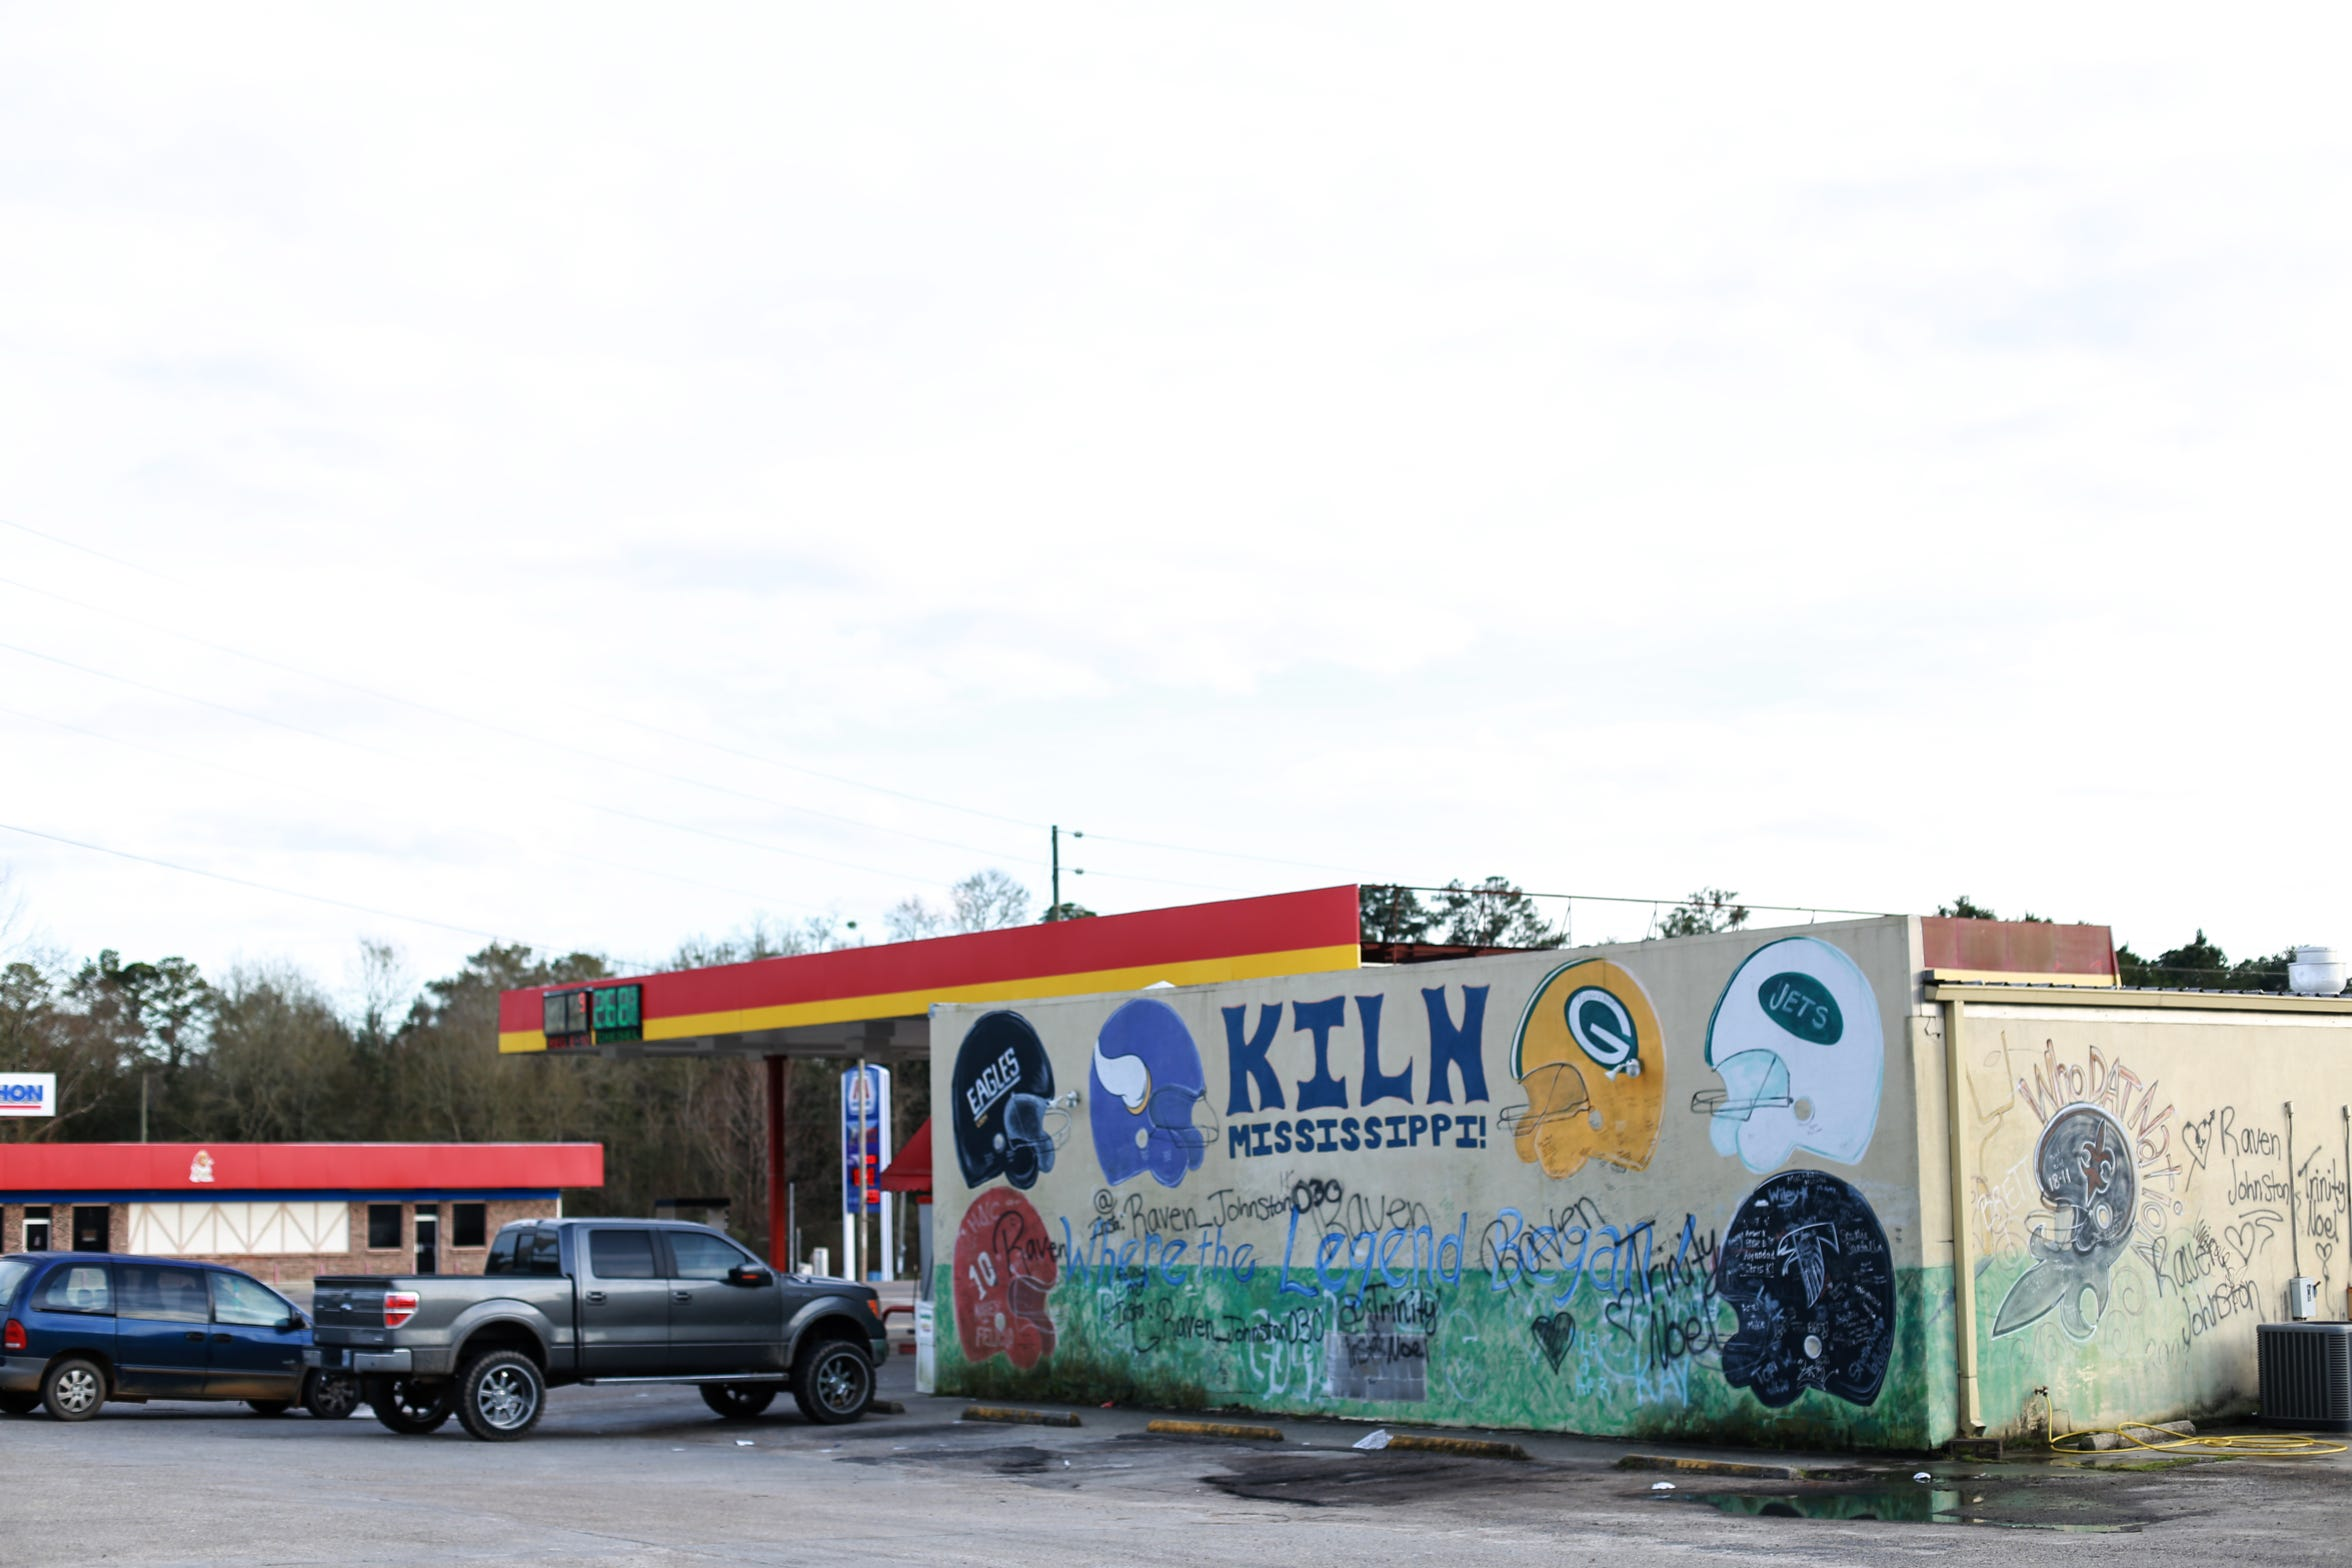 The exterior walls at Dolly's Quick Stop pay homage to hometown football hero Brett Favre and the New Orleans Saints.